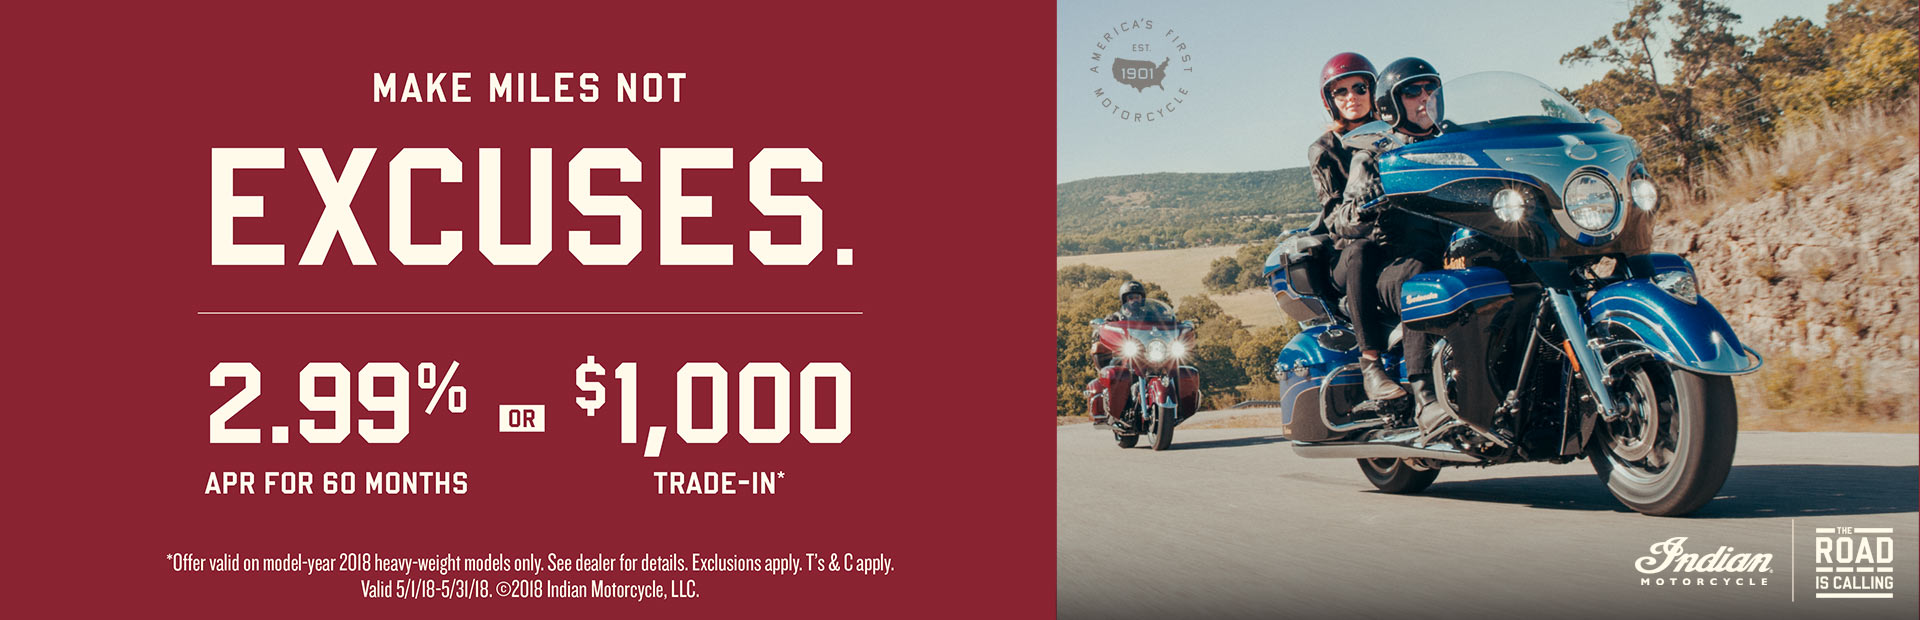 Indian Motorcycle: The Road is Calling